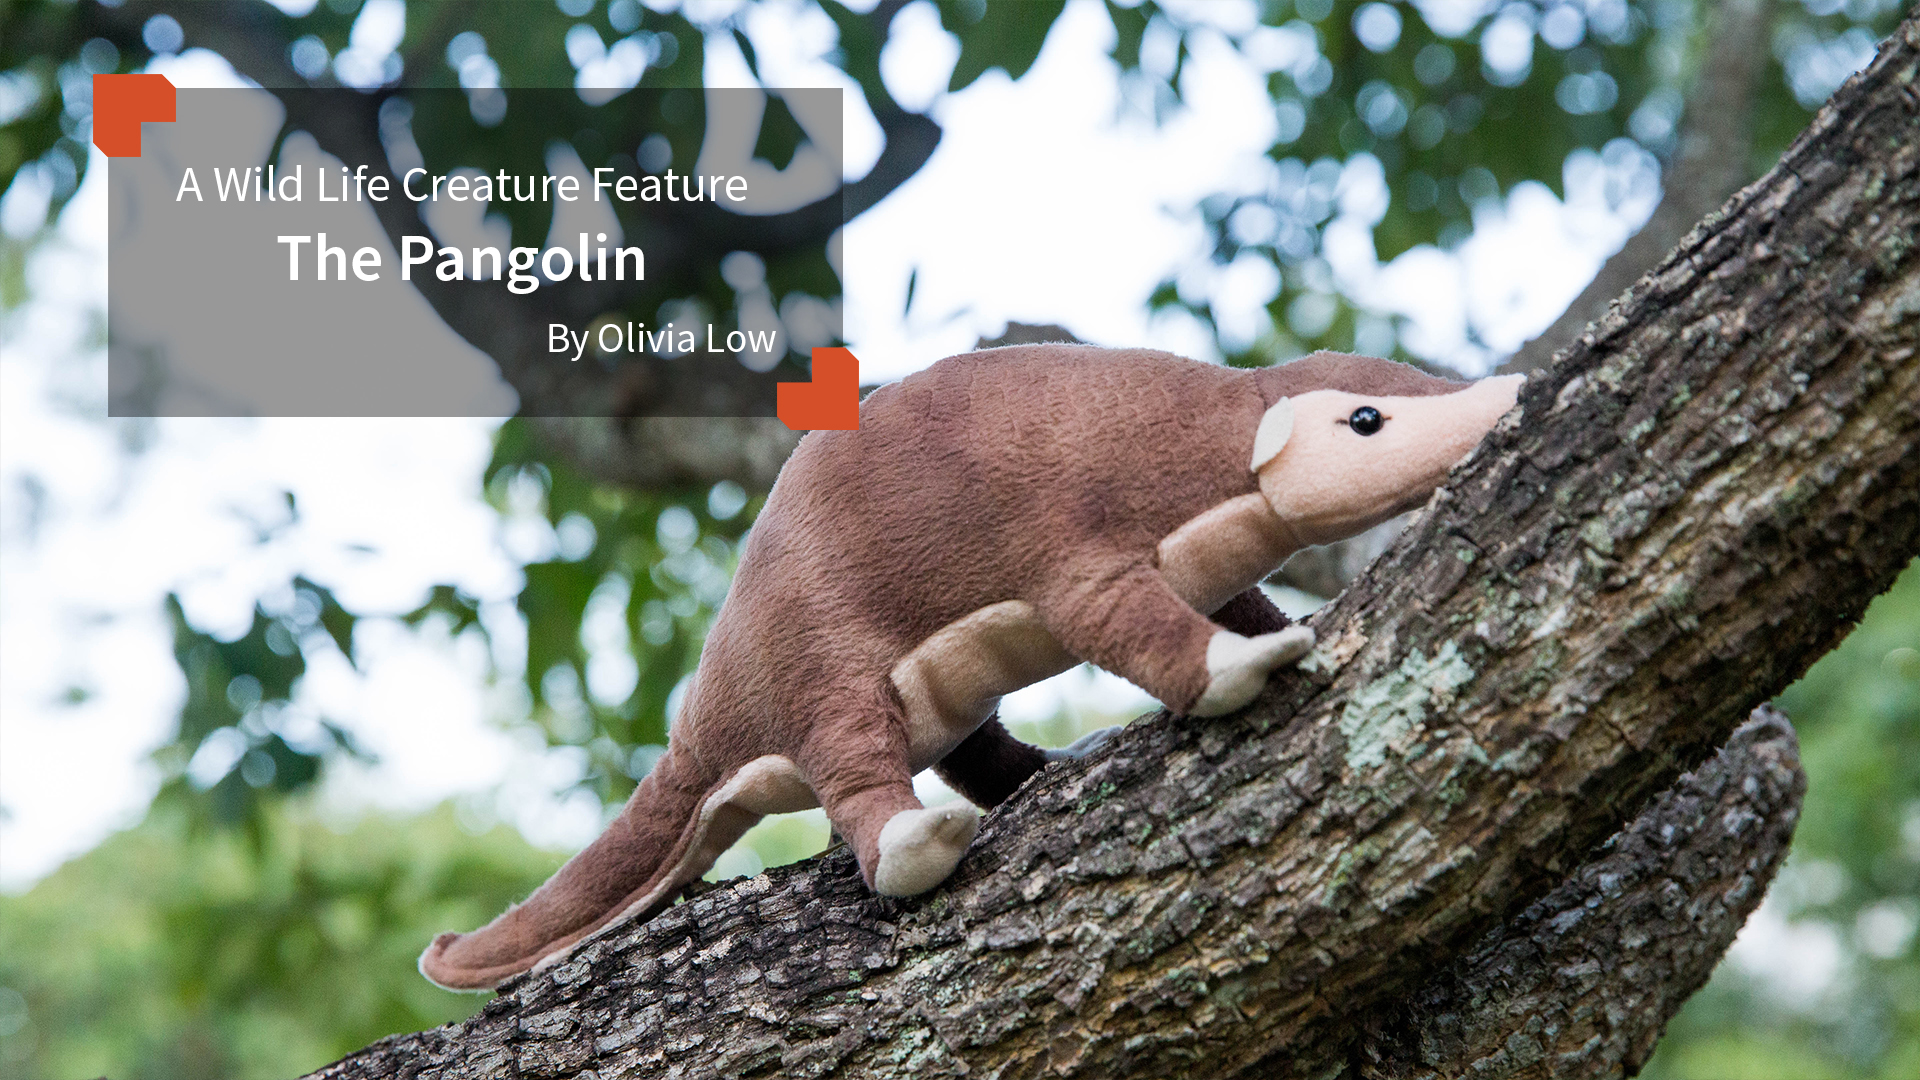 A Wild Life Creature Feature  The Pangolin By Olivia Low